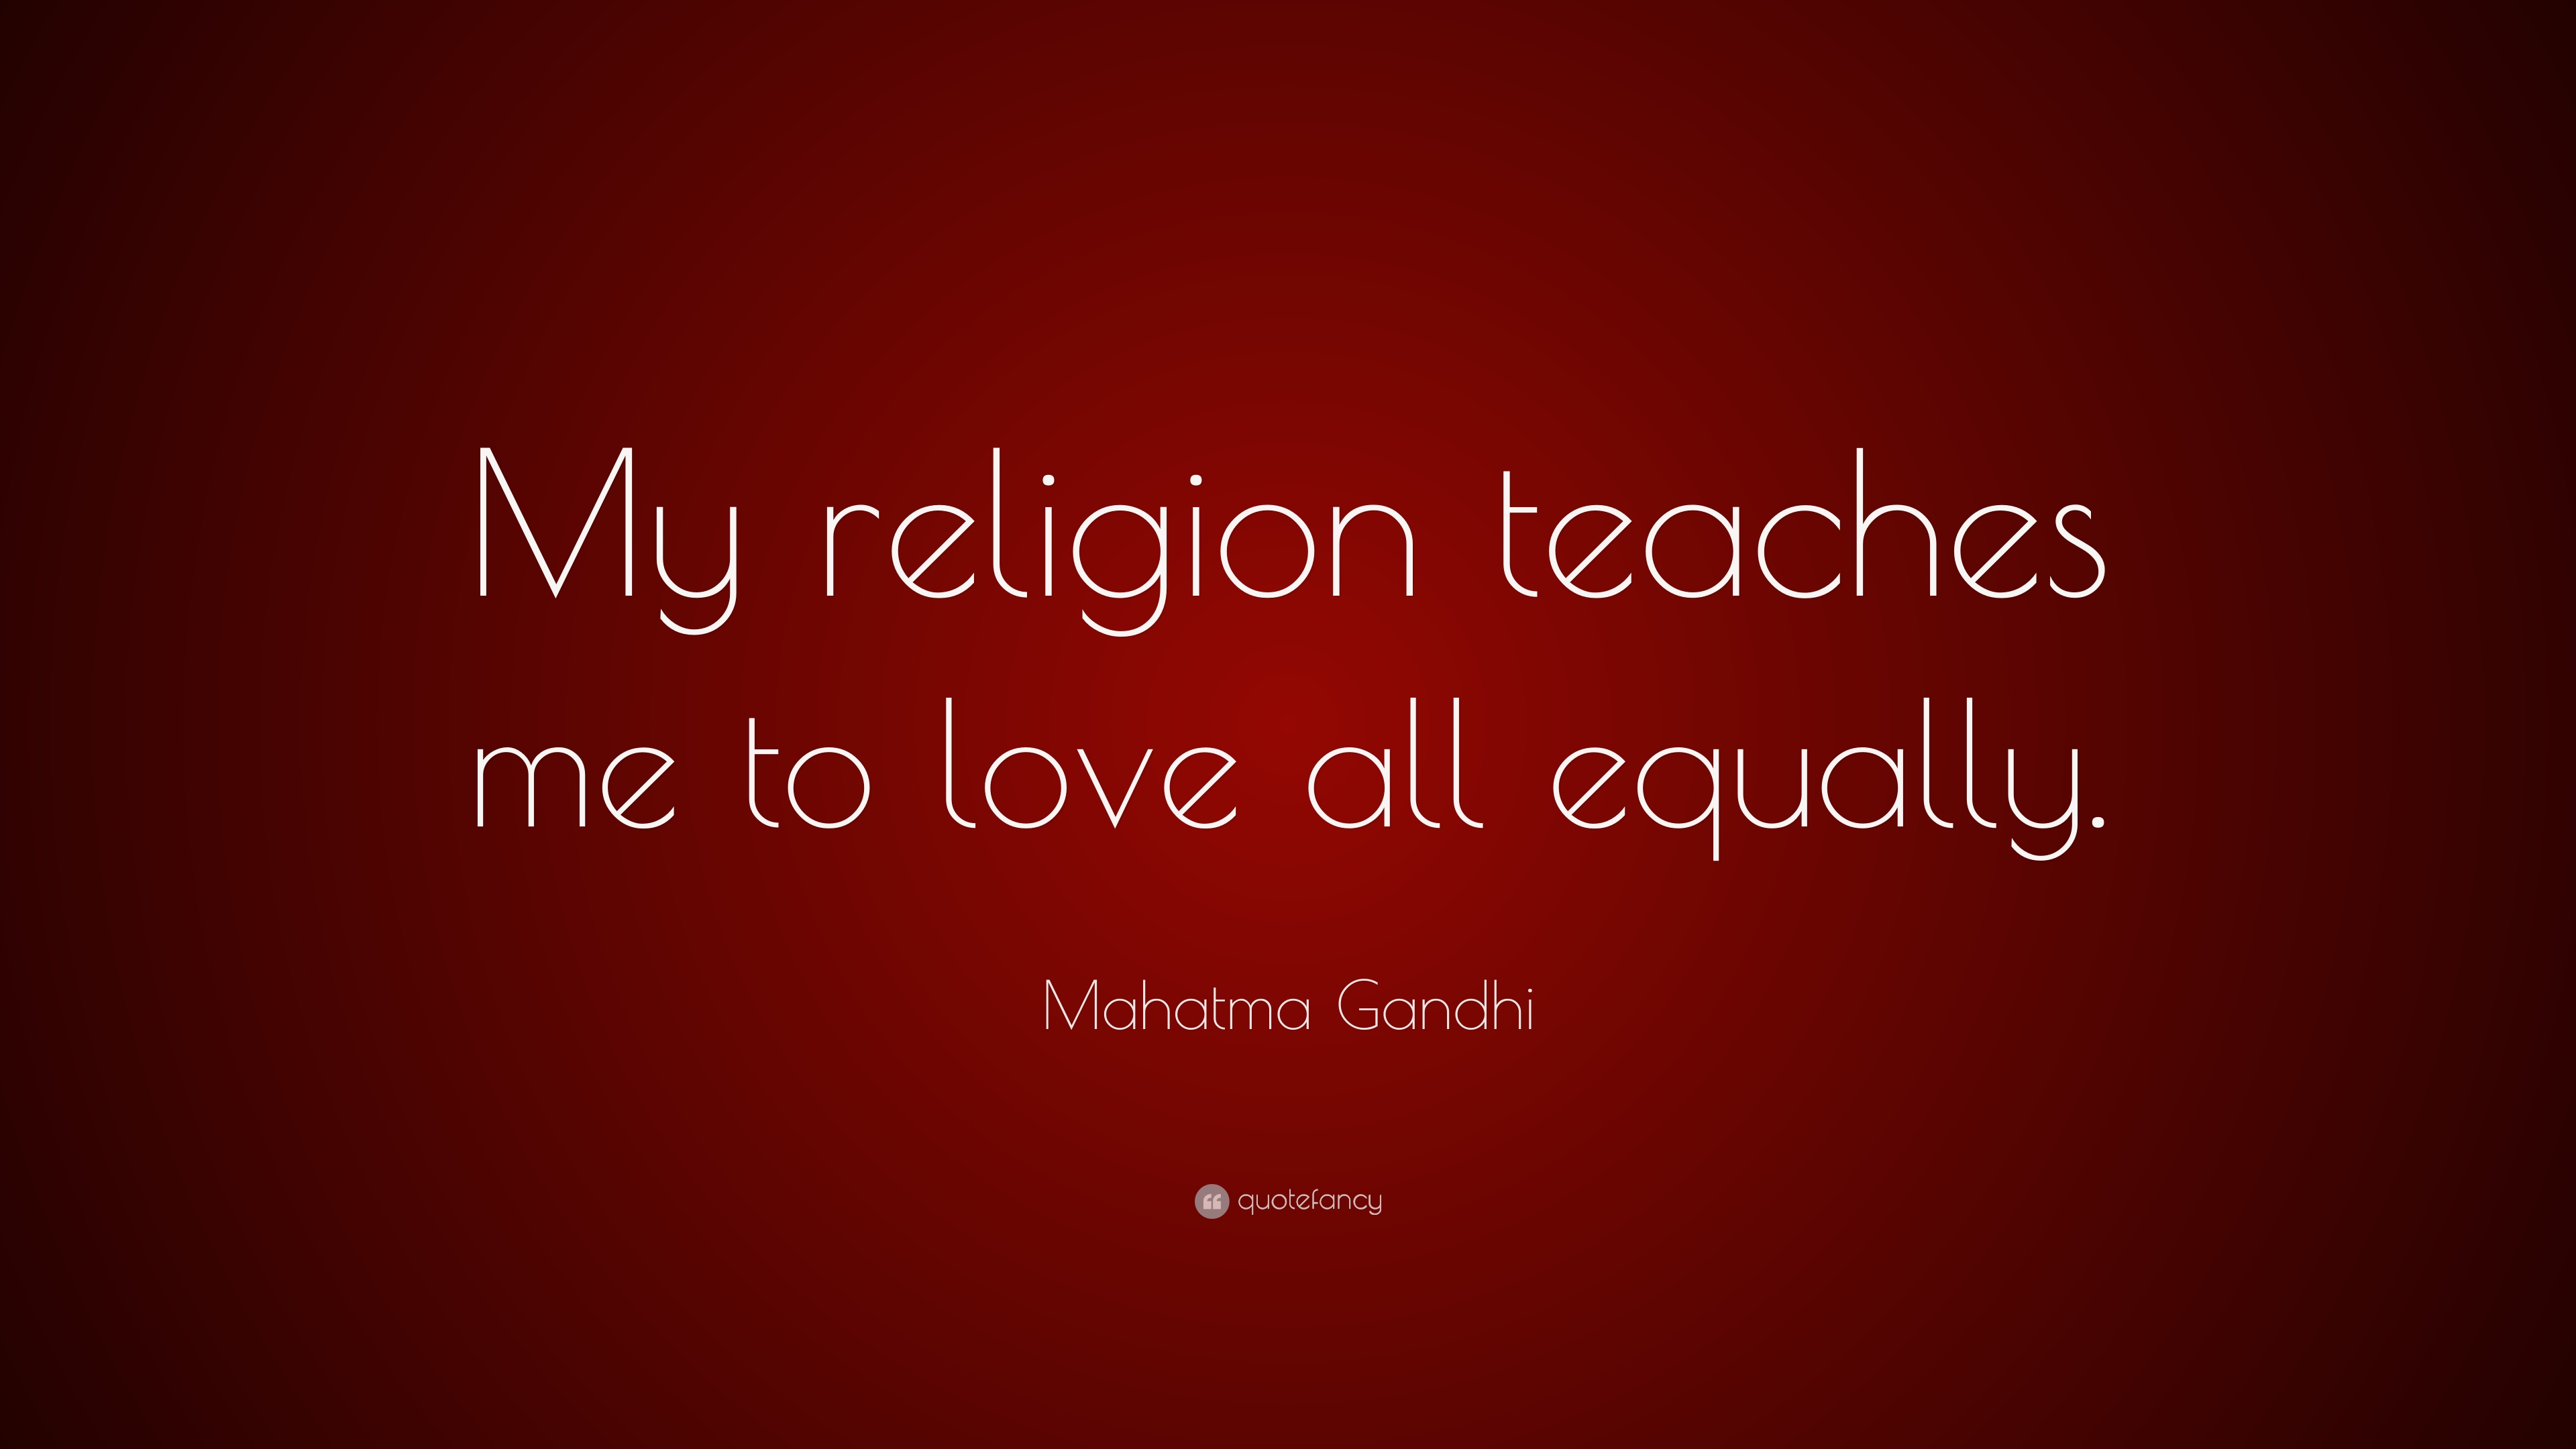 Mahatma Gandhi Quote: U201cMy Religion Teaches Me To Love All Equally.u201d